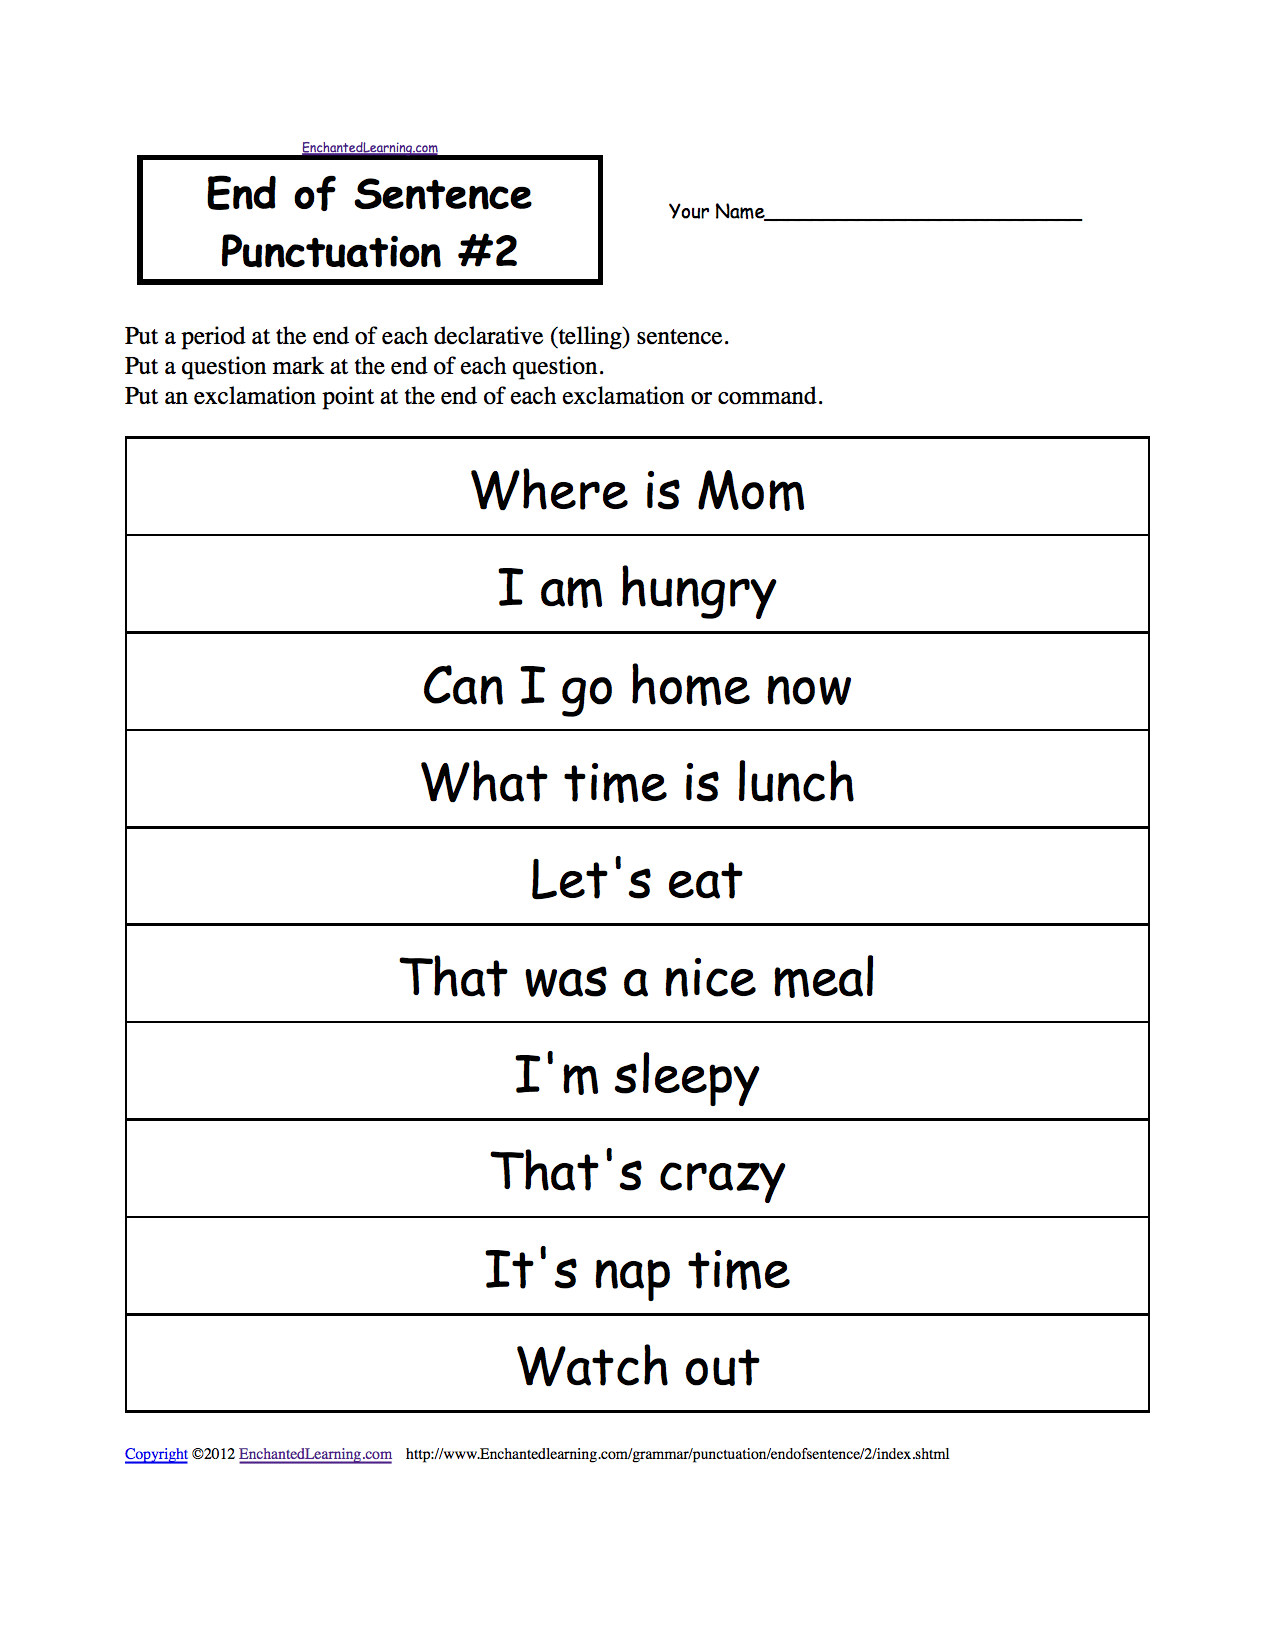 End of Sentence Punctuation, Printable Worksheets. EnchantedLearning.com